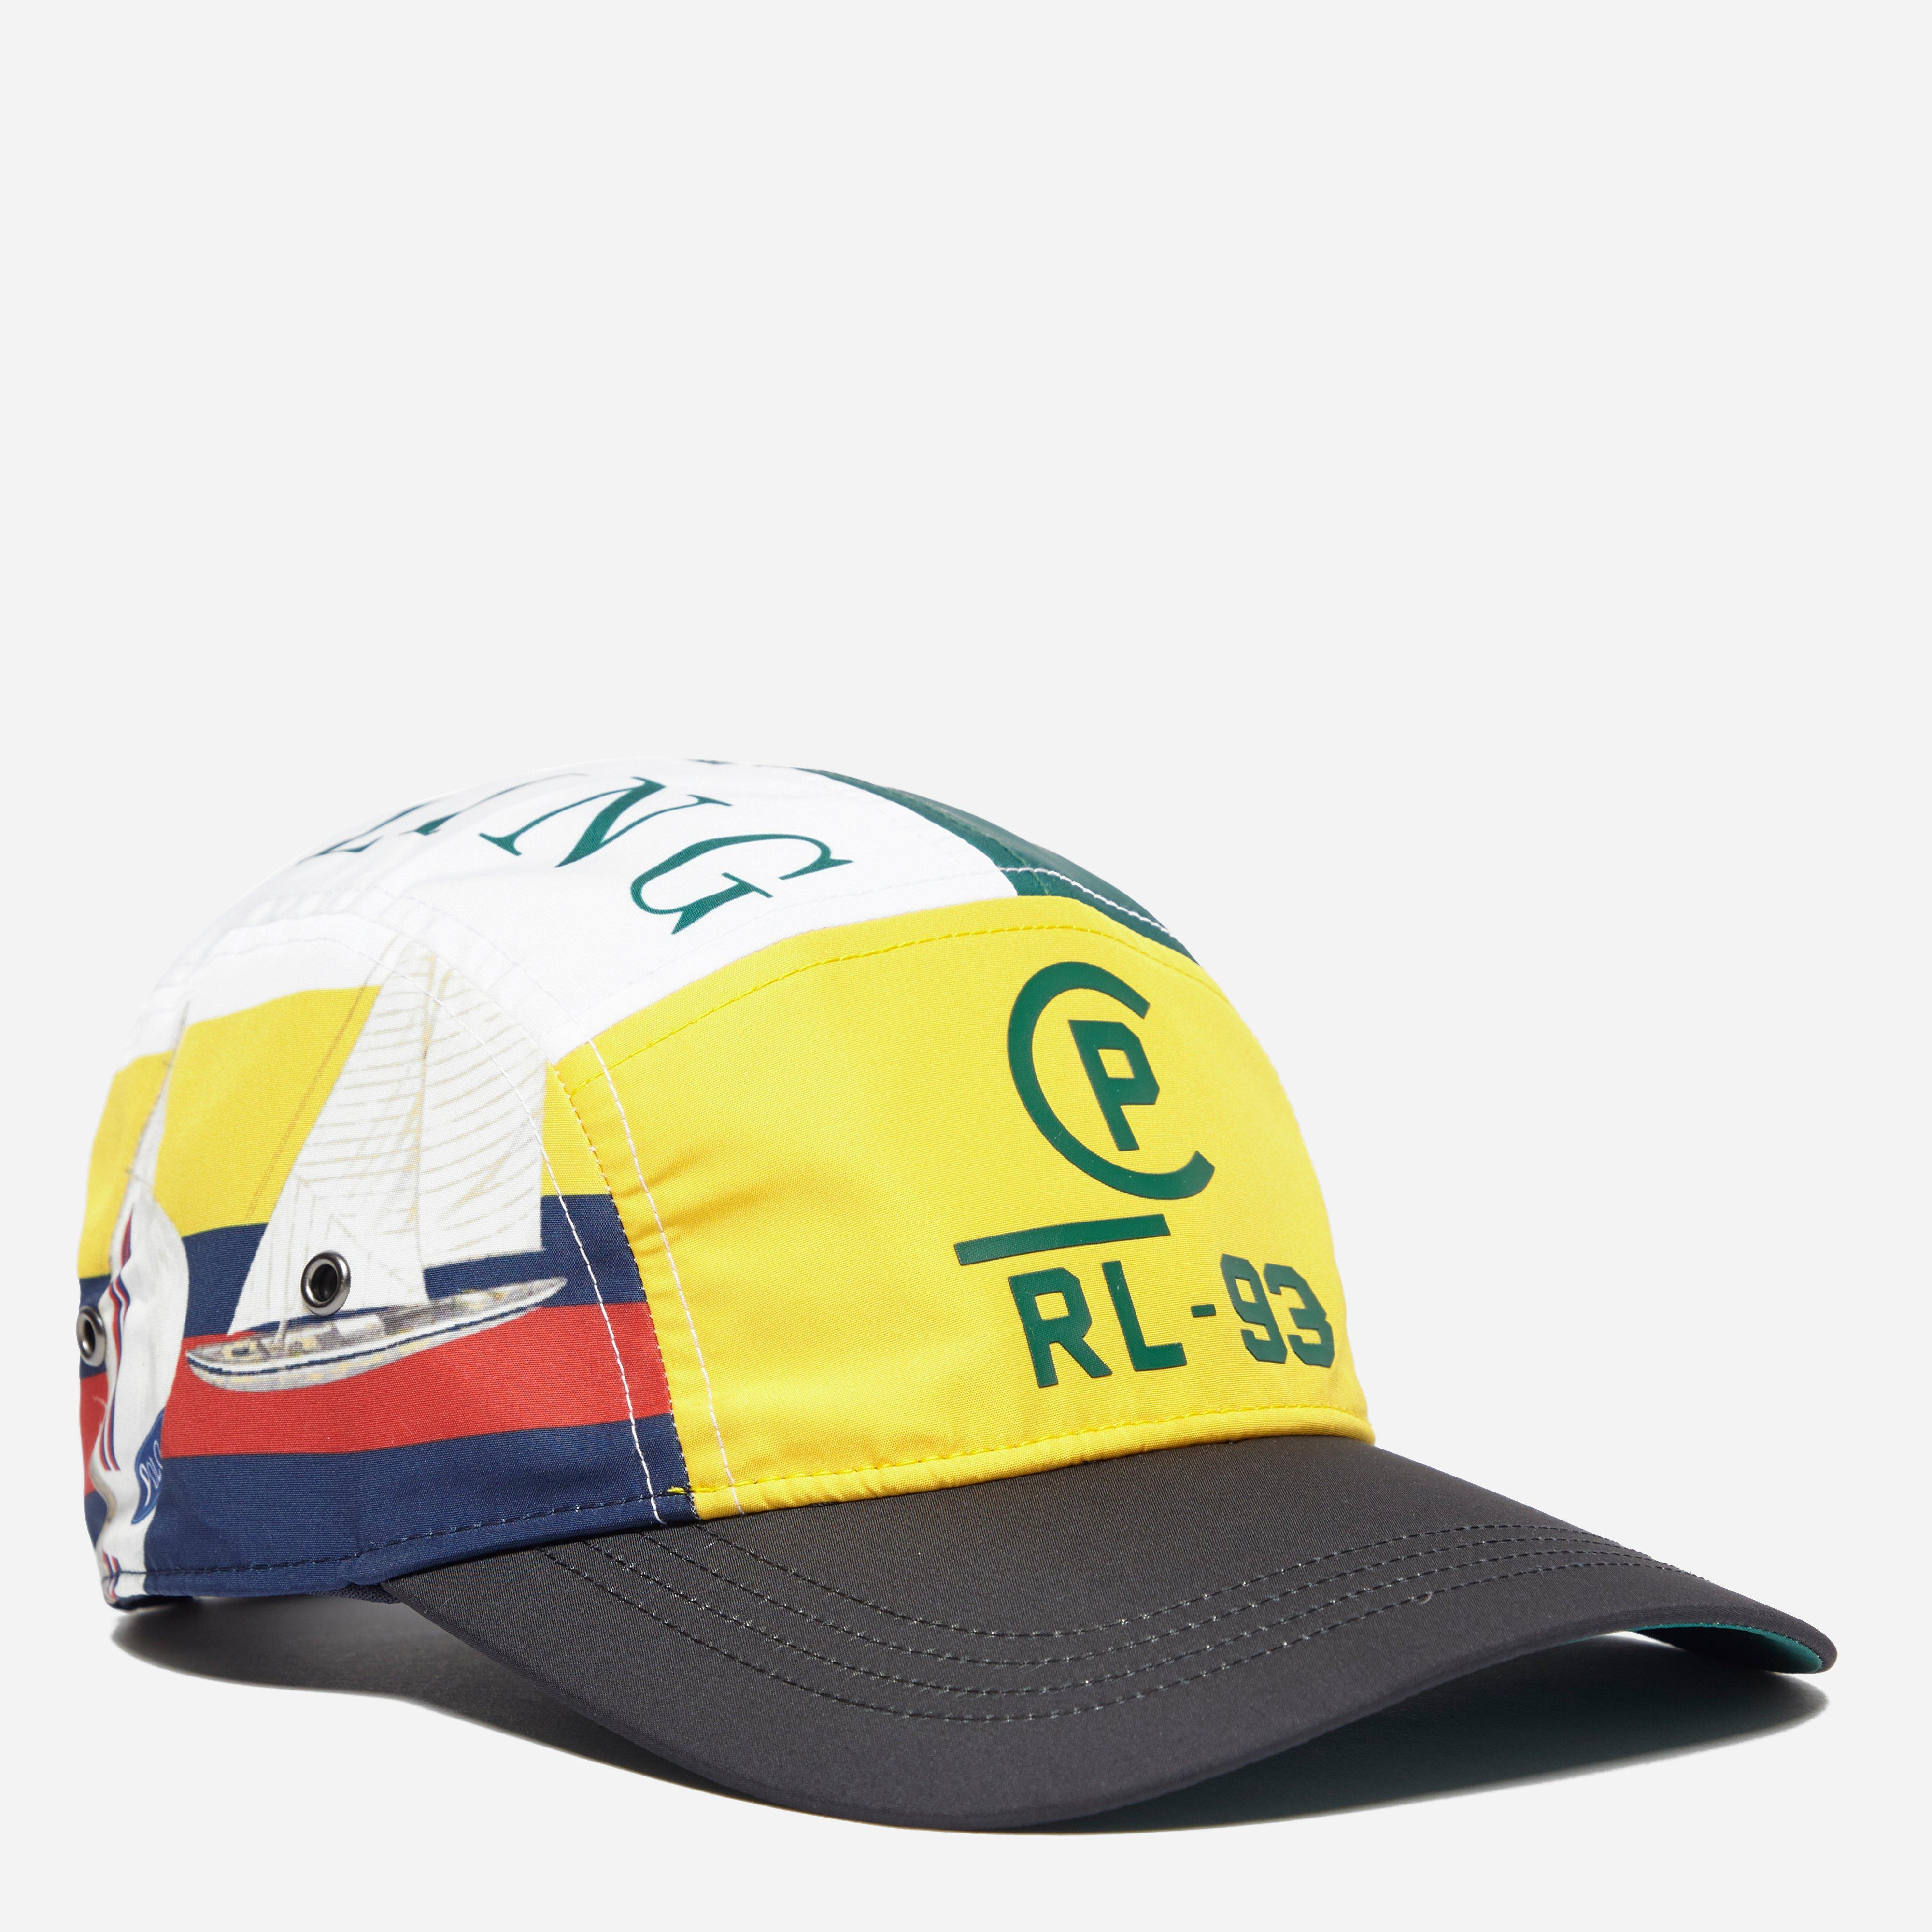 af5d216bfd294 Polo Ralph Lauren Cp - 93 Regatta Limited Edition 5 Panel Cap in ...